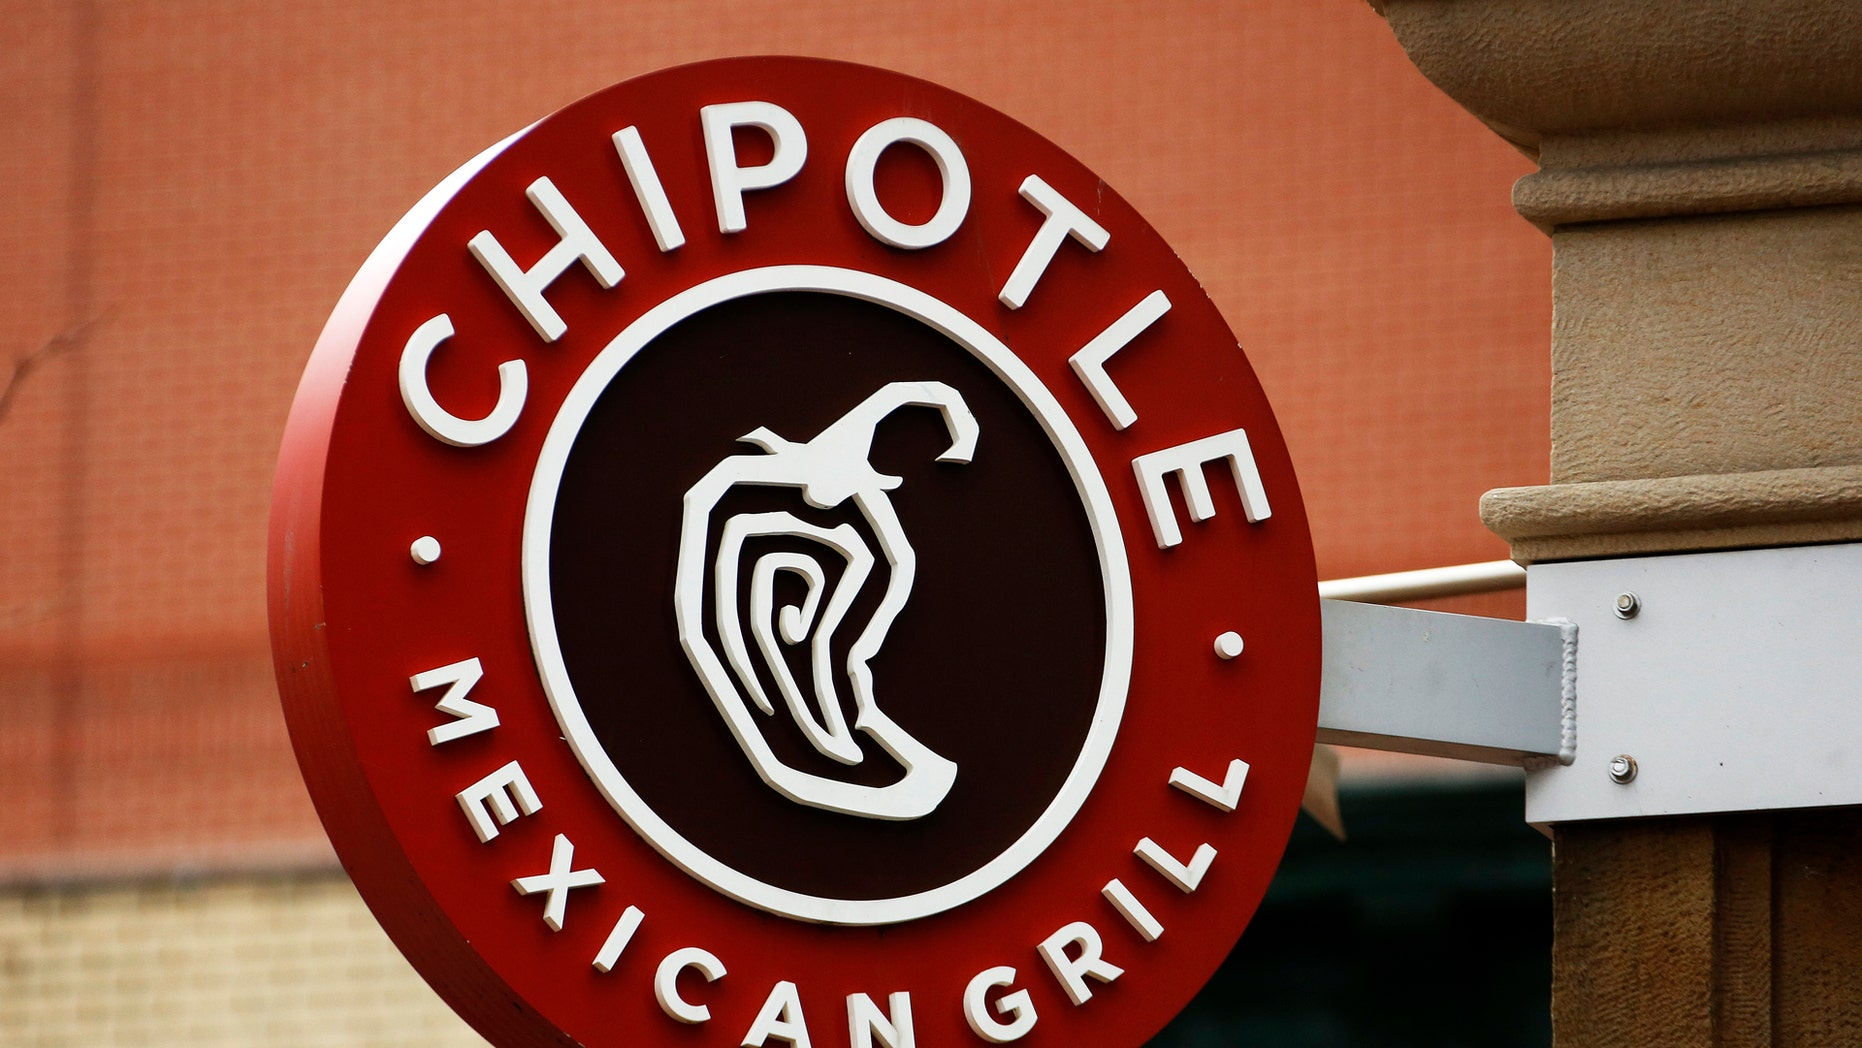 More cheese, please! Chipotle announces highly anticipated arrival of its own cheese dip.